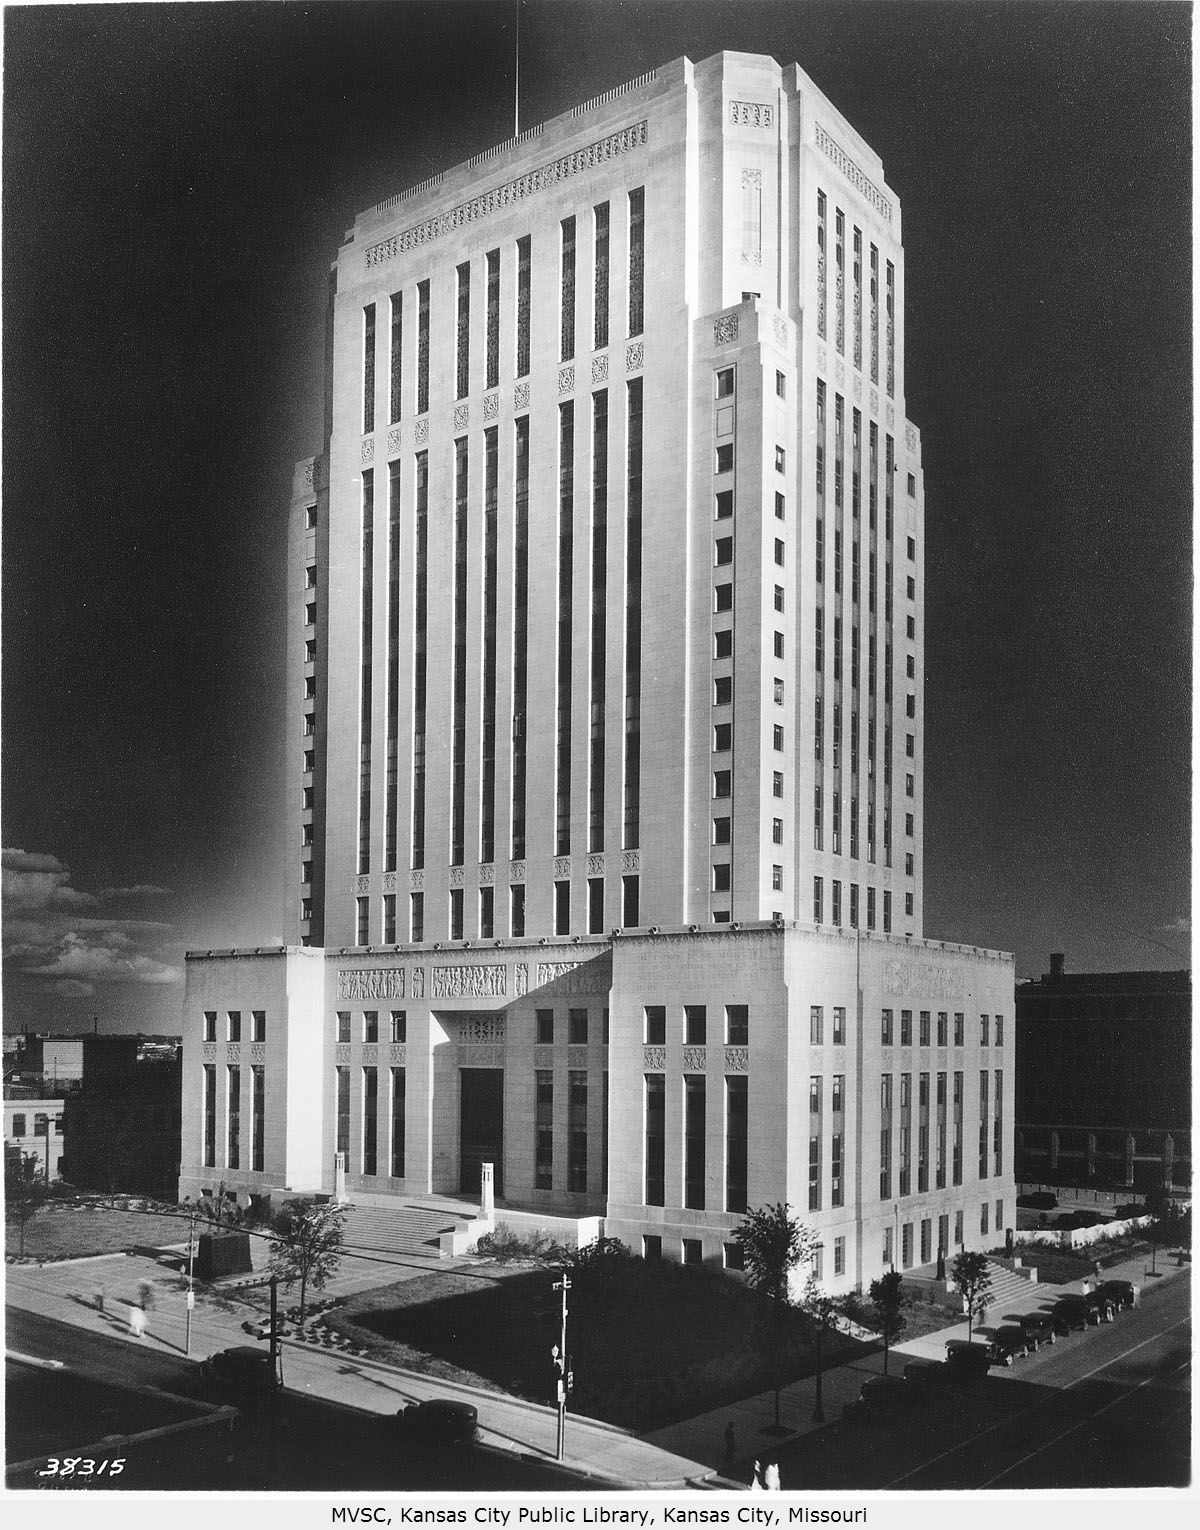 The current courthouse was constructed in 1934 in the Art Deco style. Image courtesy of the Missouri Valley Special Collections.